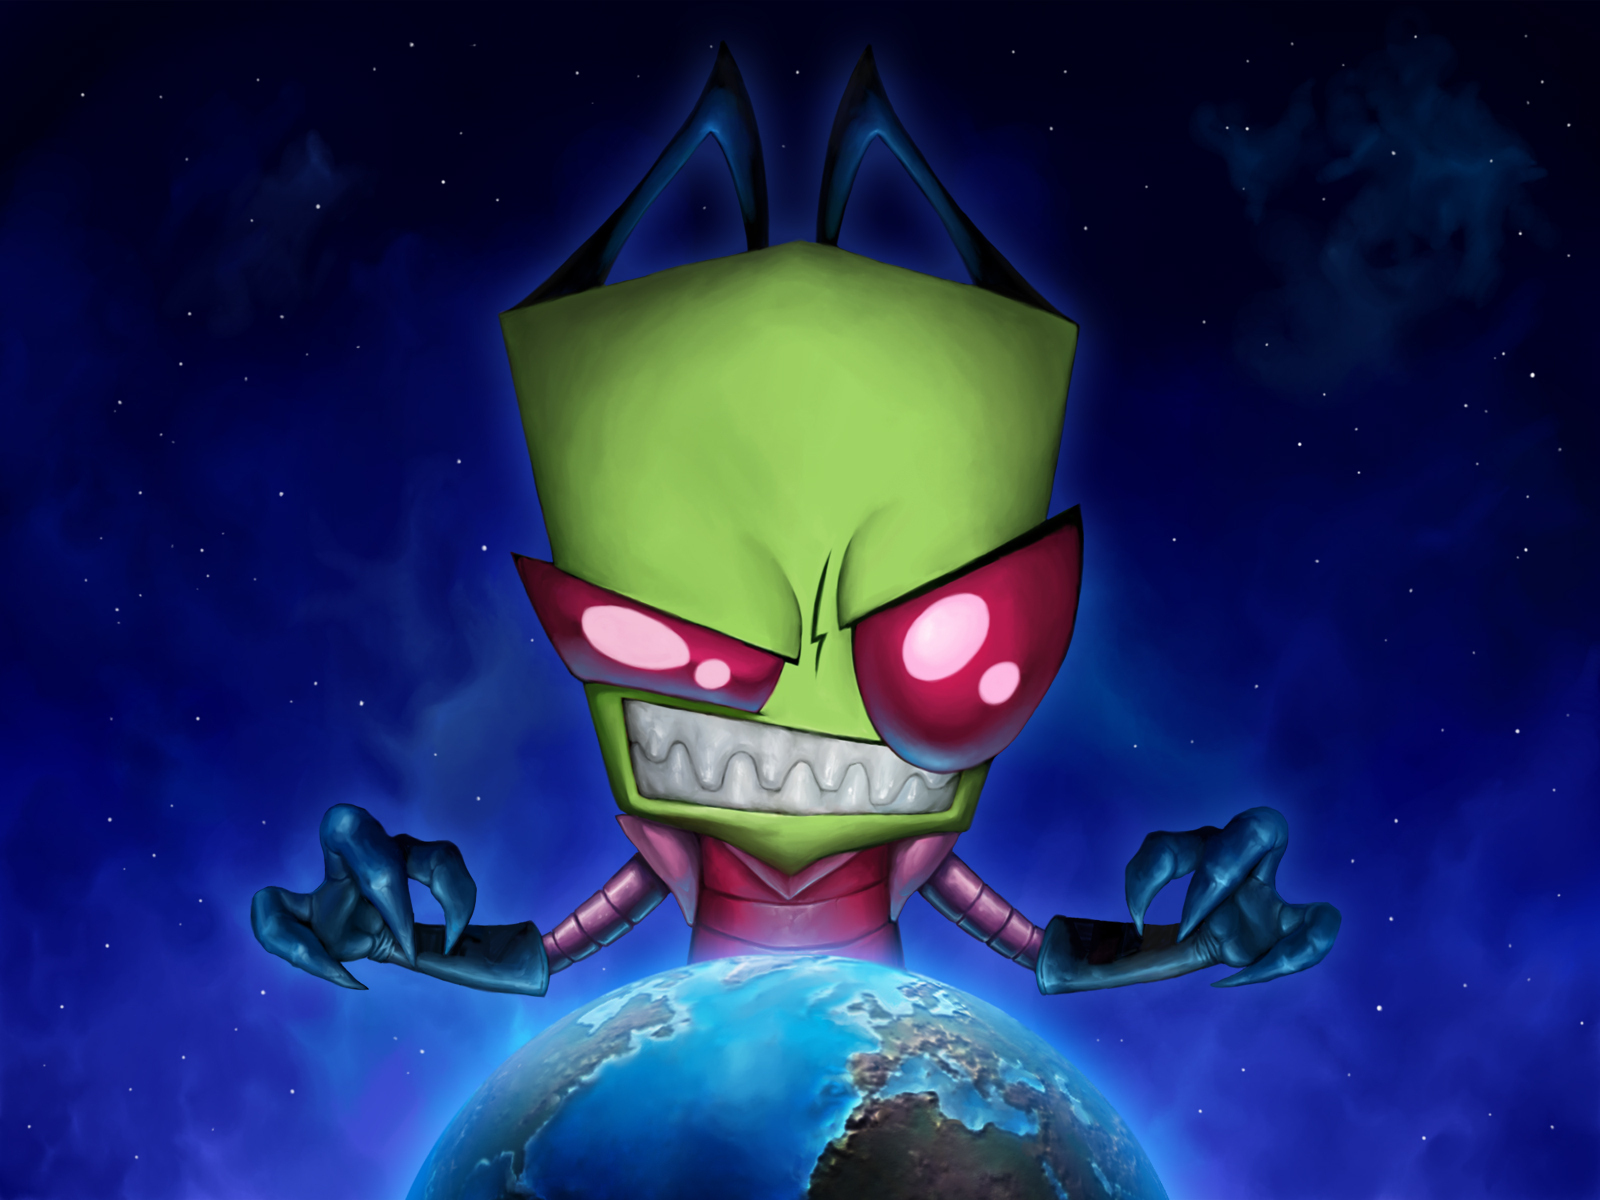 invader zim images the most awesomest zim wallpaper ever hd